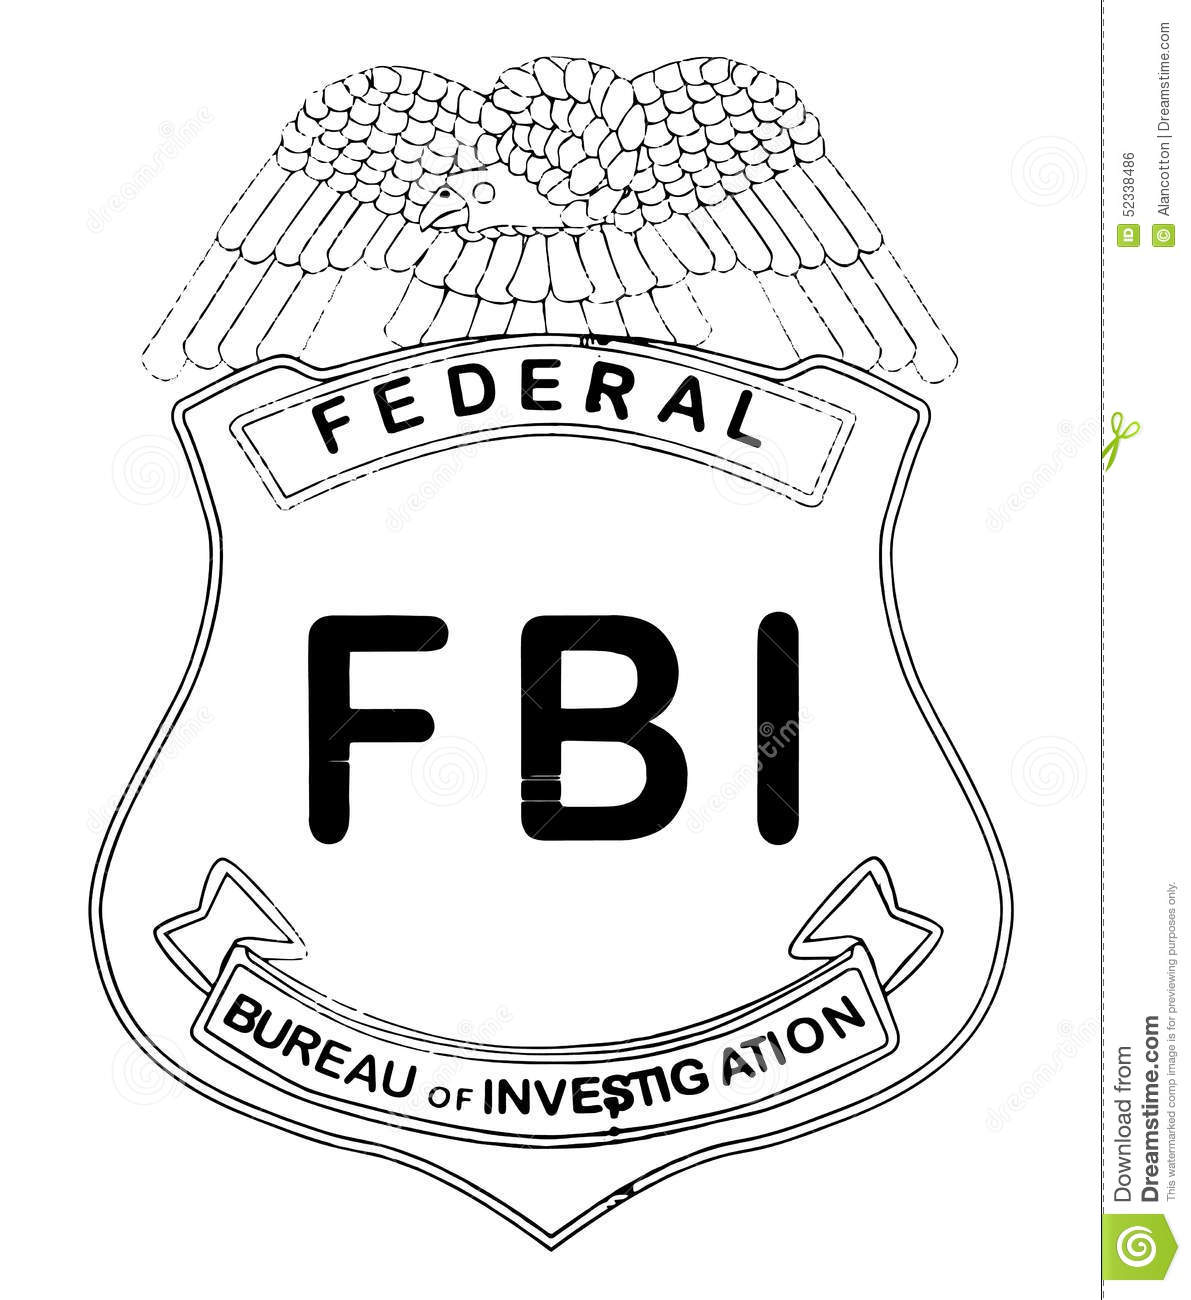 feds badge stock illustration image of investigation 52338486. Black Bedroom Furniture Sets. Home Design Ideas